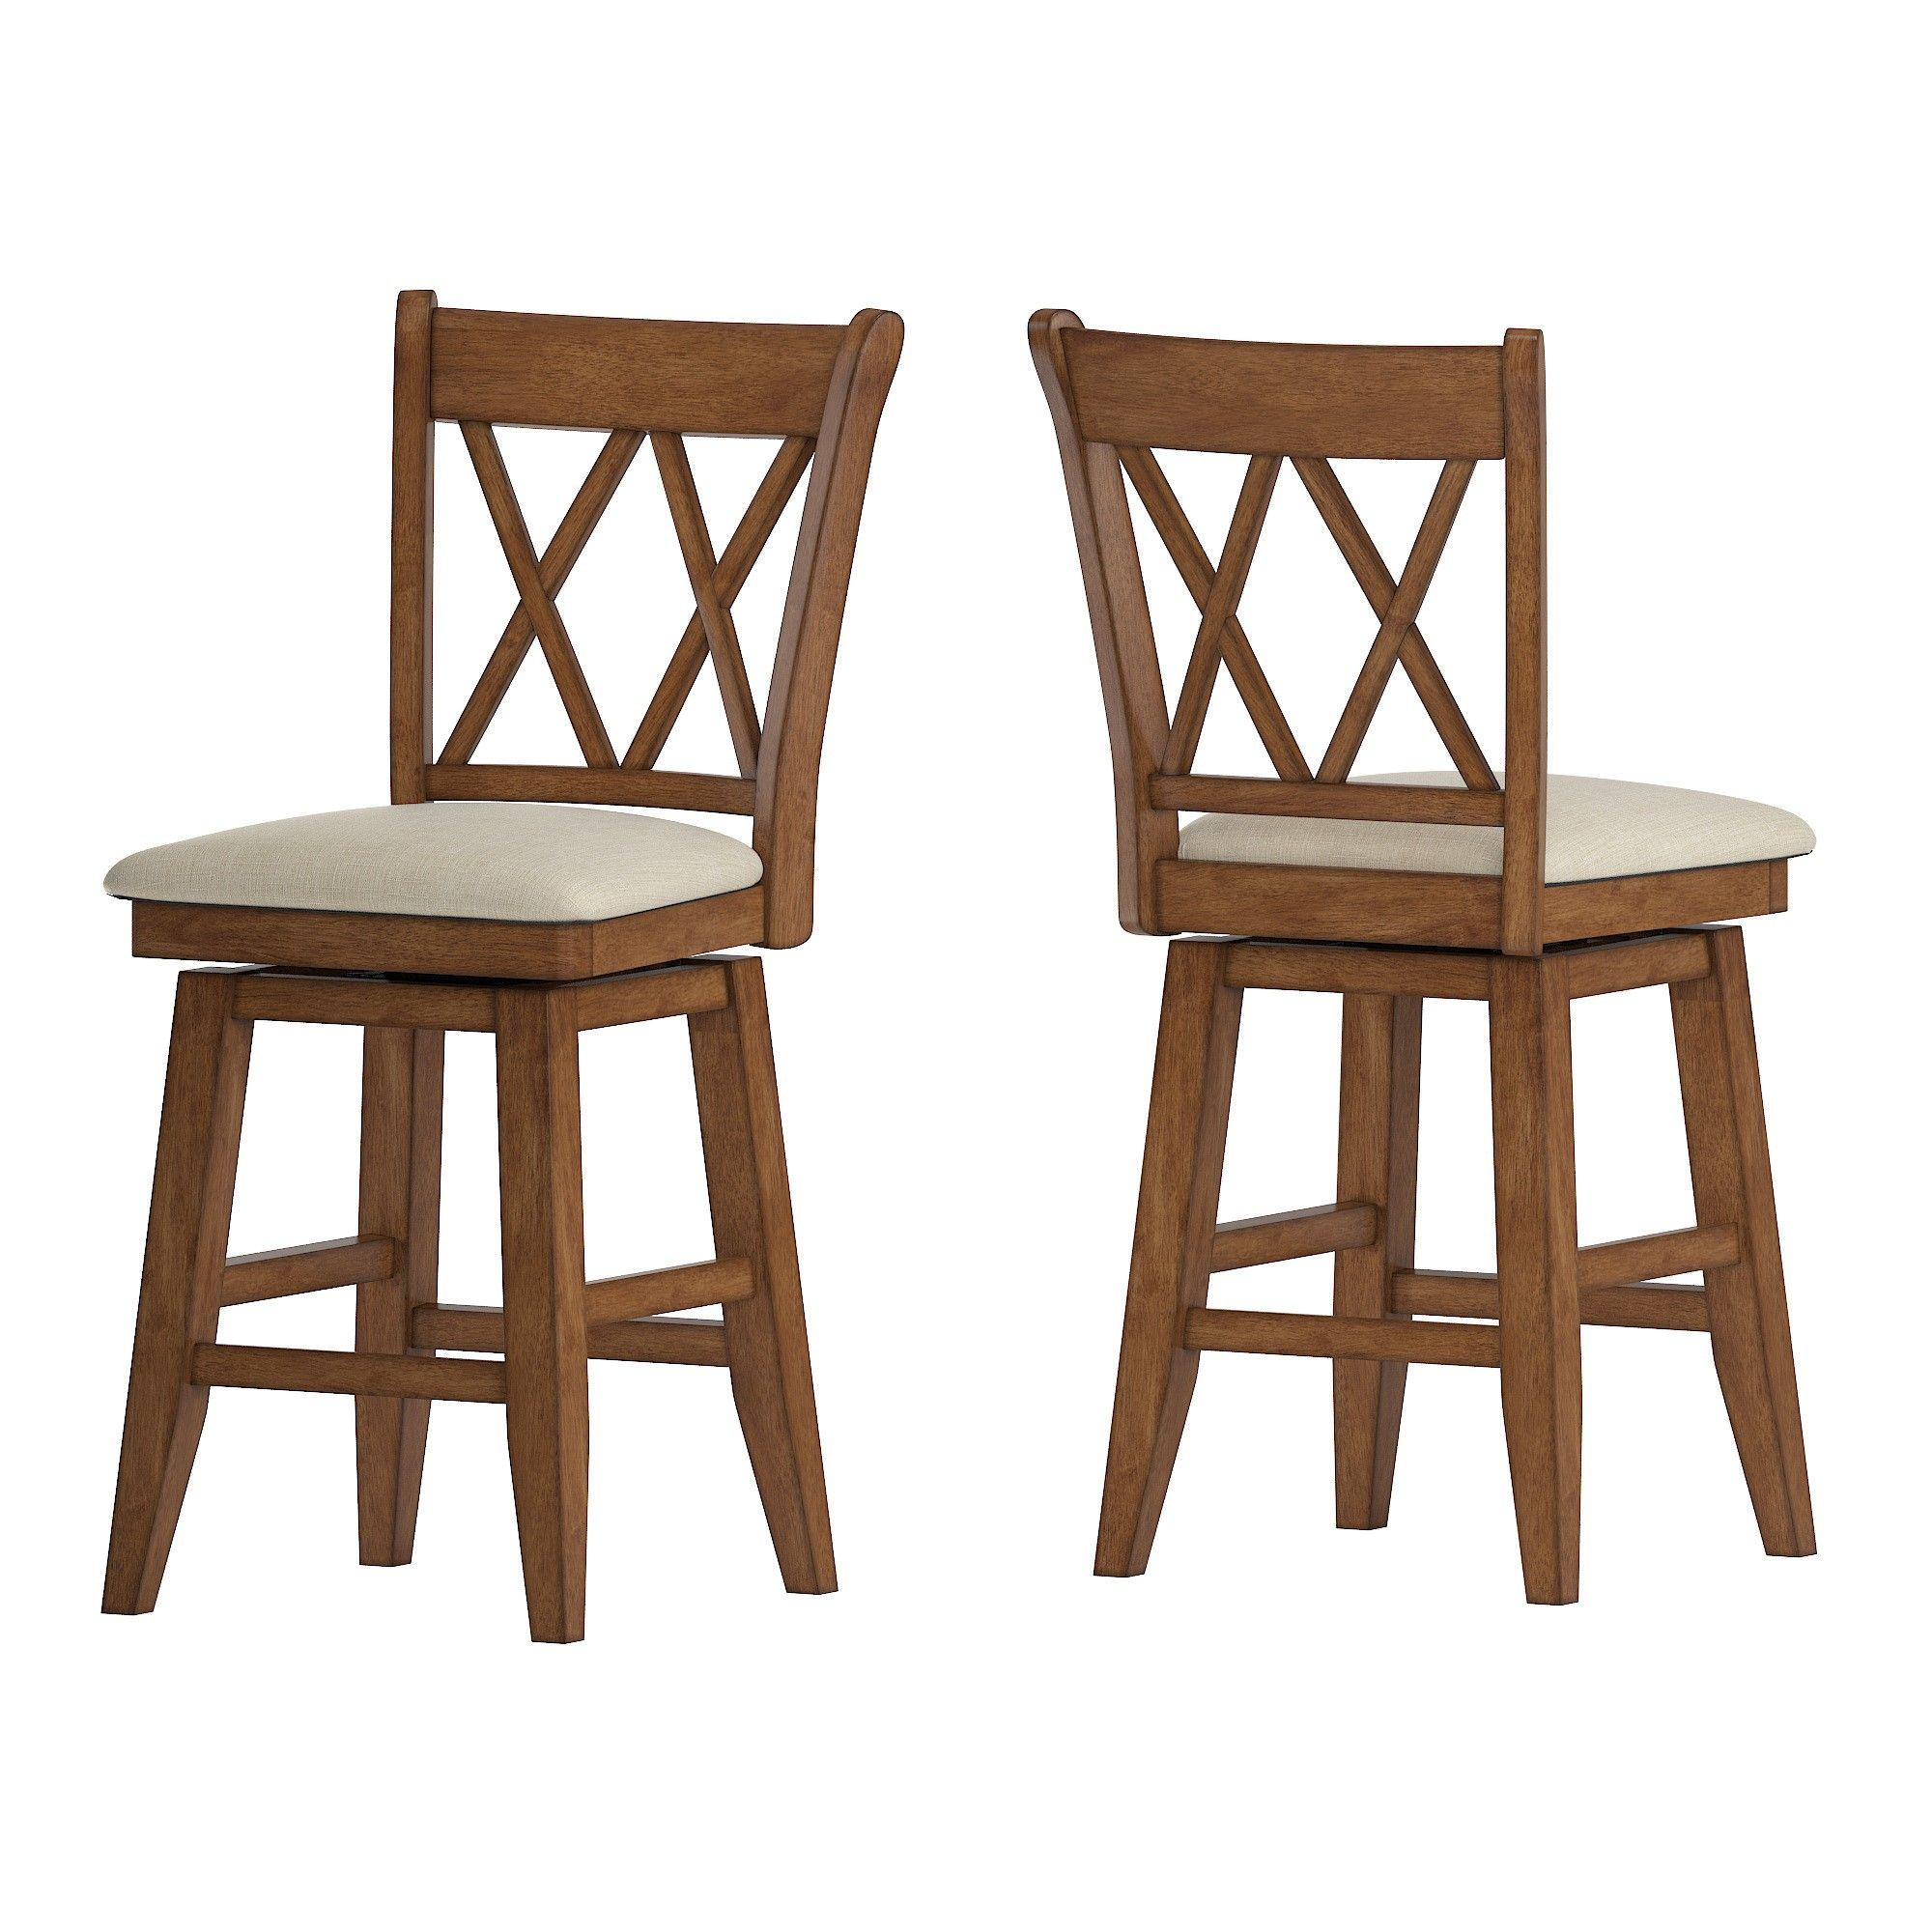 Excellent 24 South Hill Double X Back Swivel Counter Height Chair Oak Pabps2019 Chair Design Images Pabps2019Com